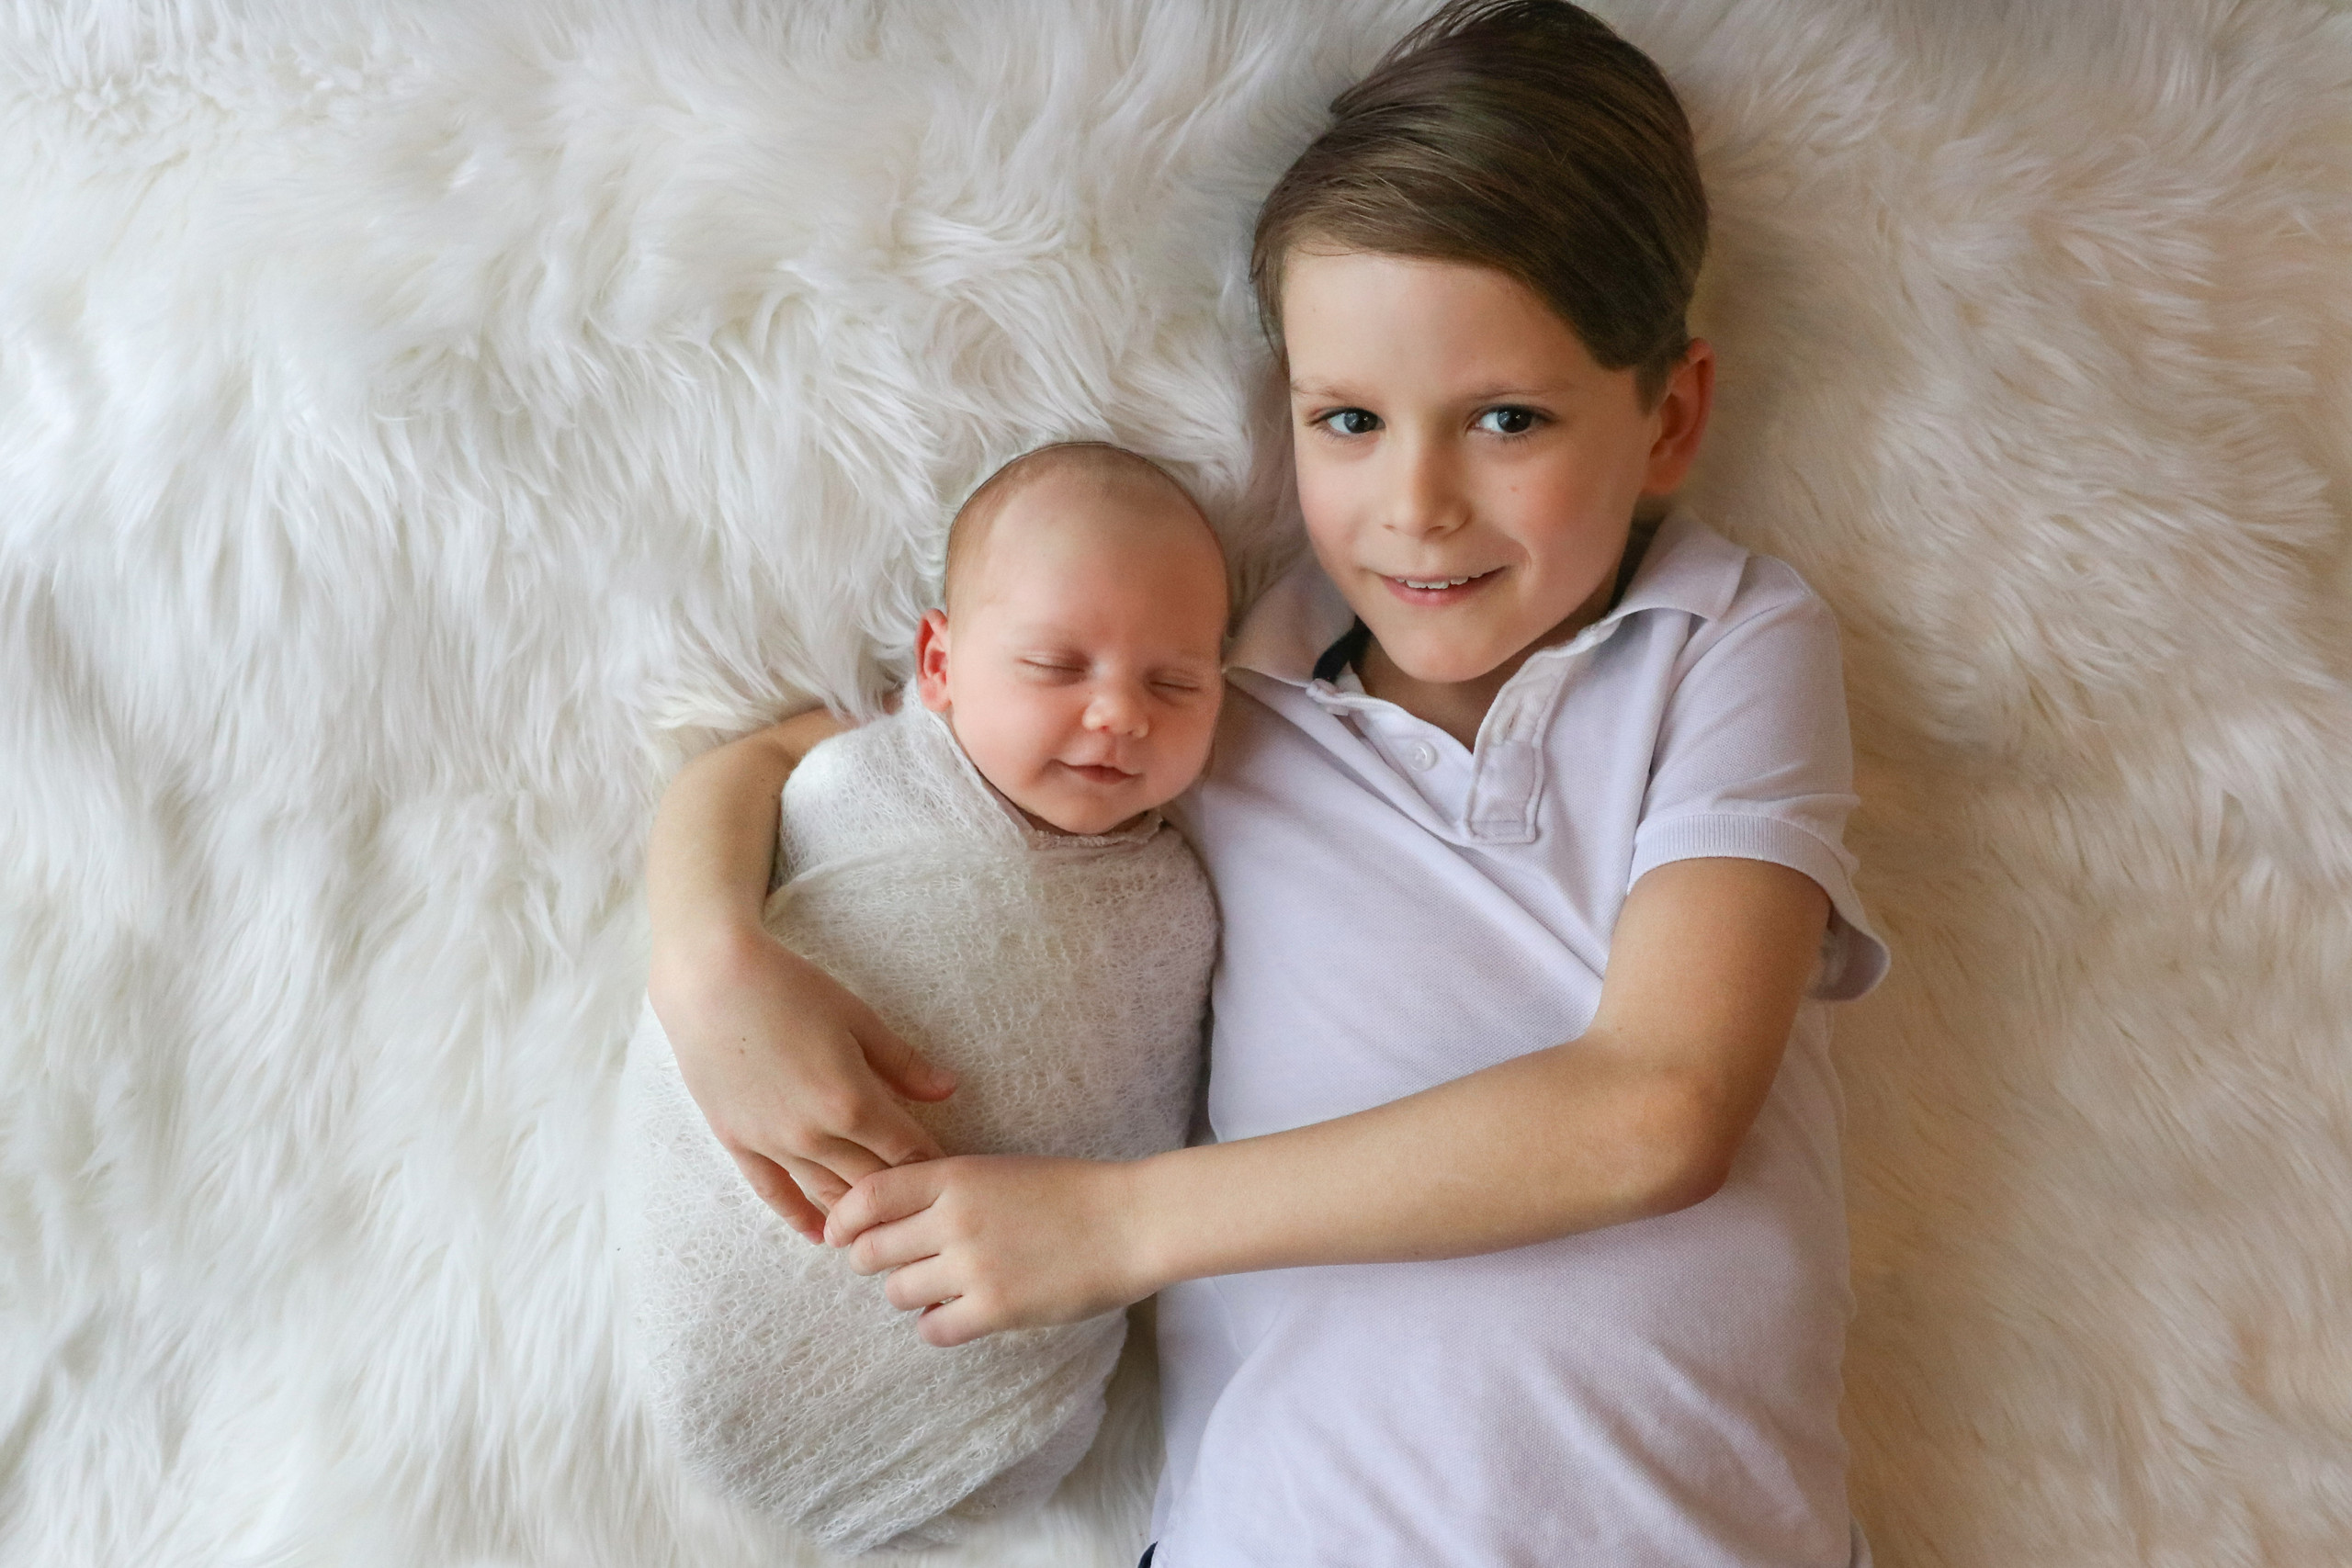 a smiling newborn boy wrapped in white, cuddled up with his smiling older brother